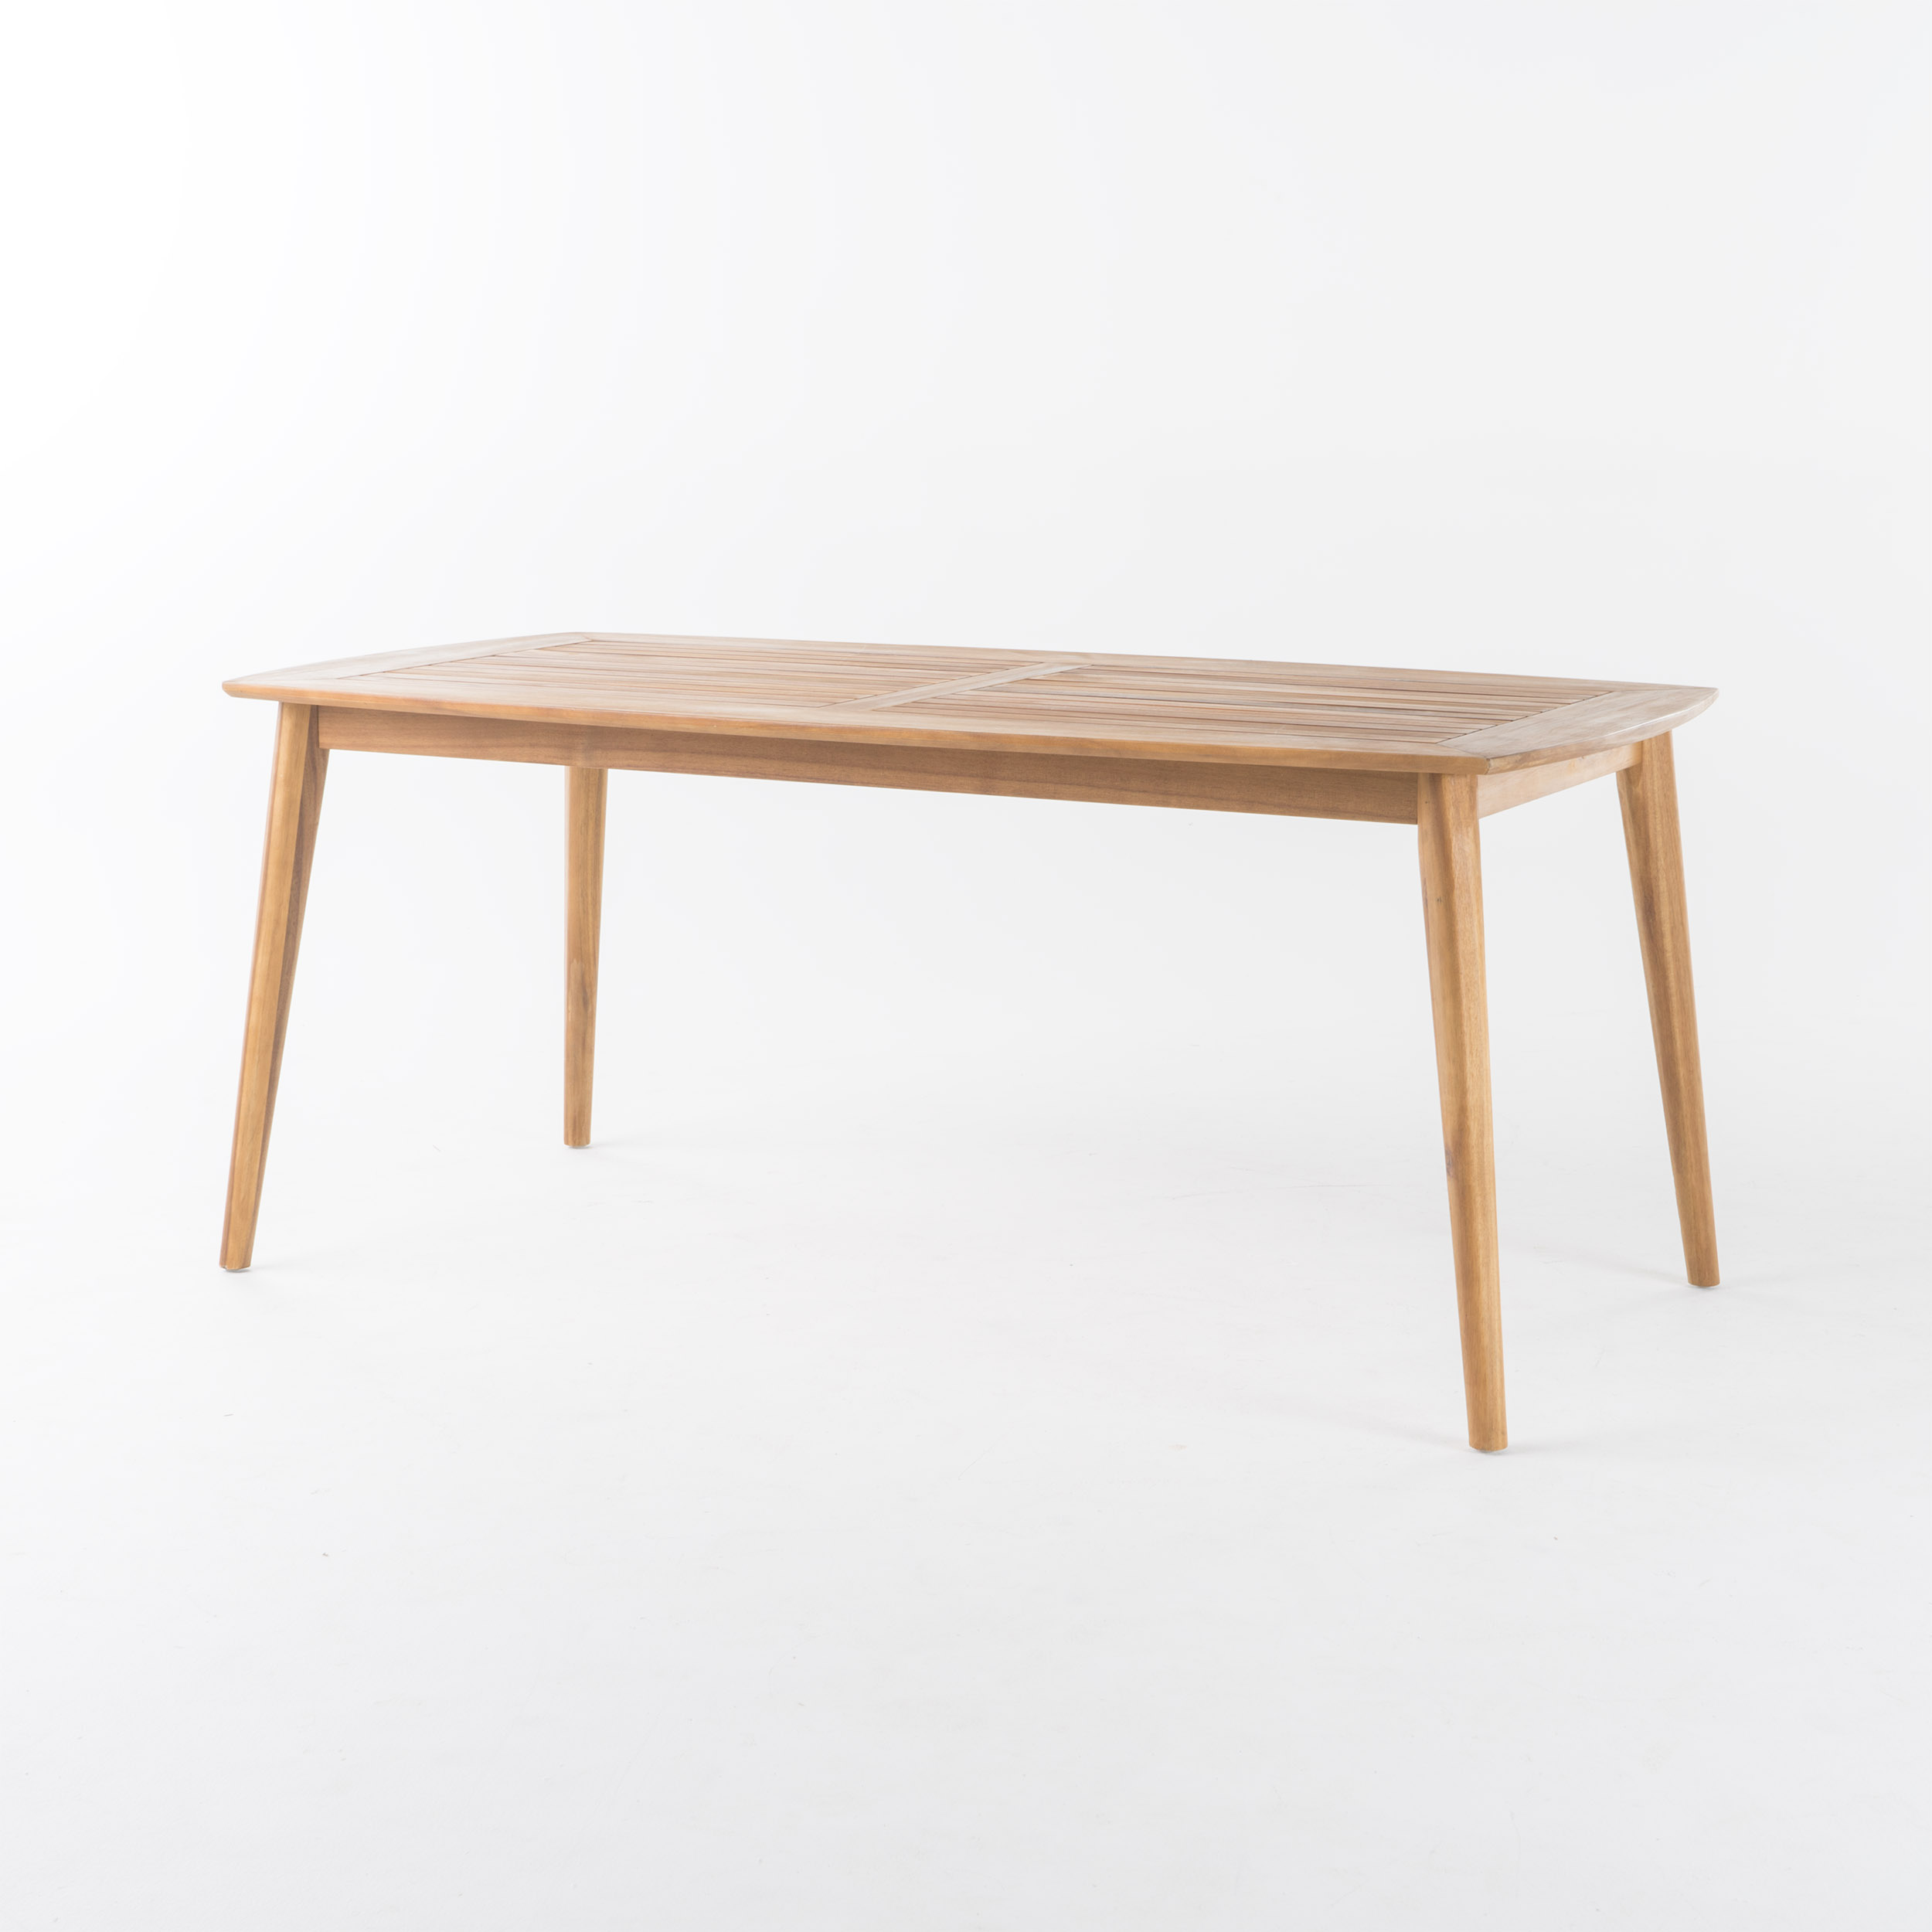 Cote Acacia Wood Outdoor Dining Table, Teak Finish by GDF Studio